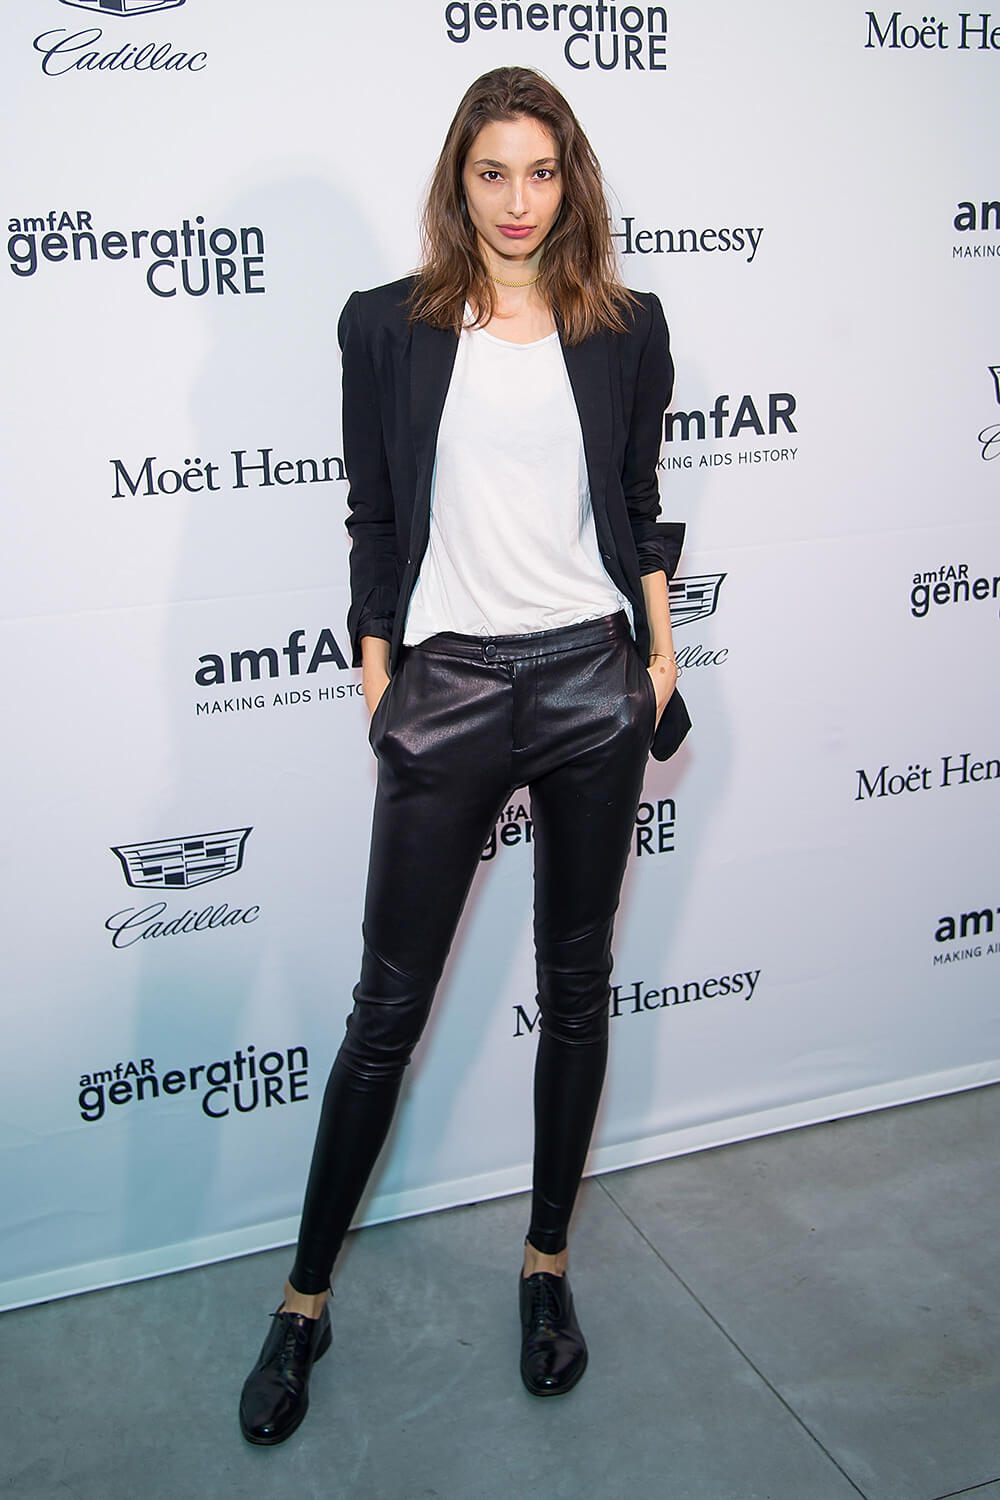 Alexandra Agoston attends amfAR GenerationCure holiday party